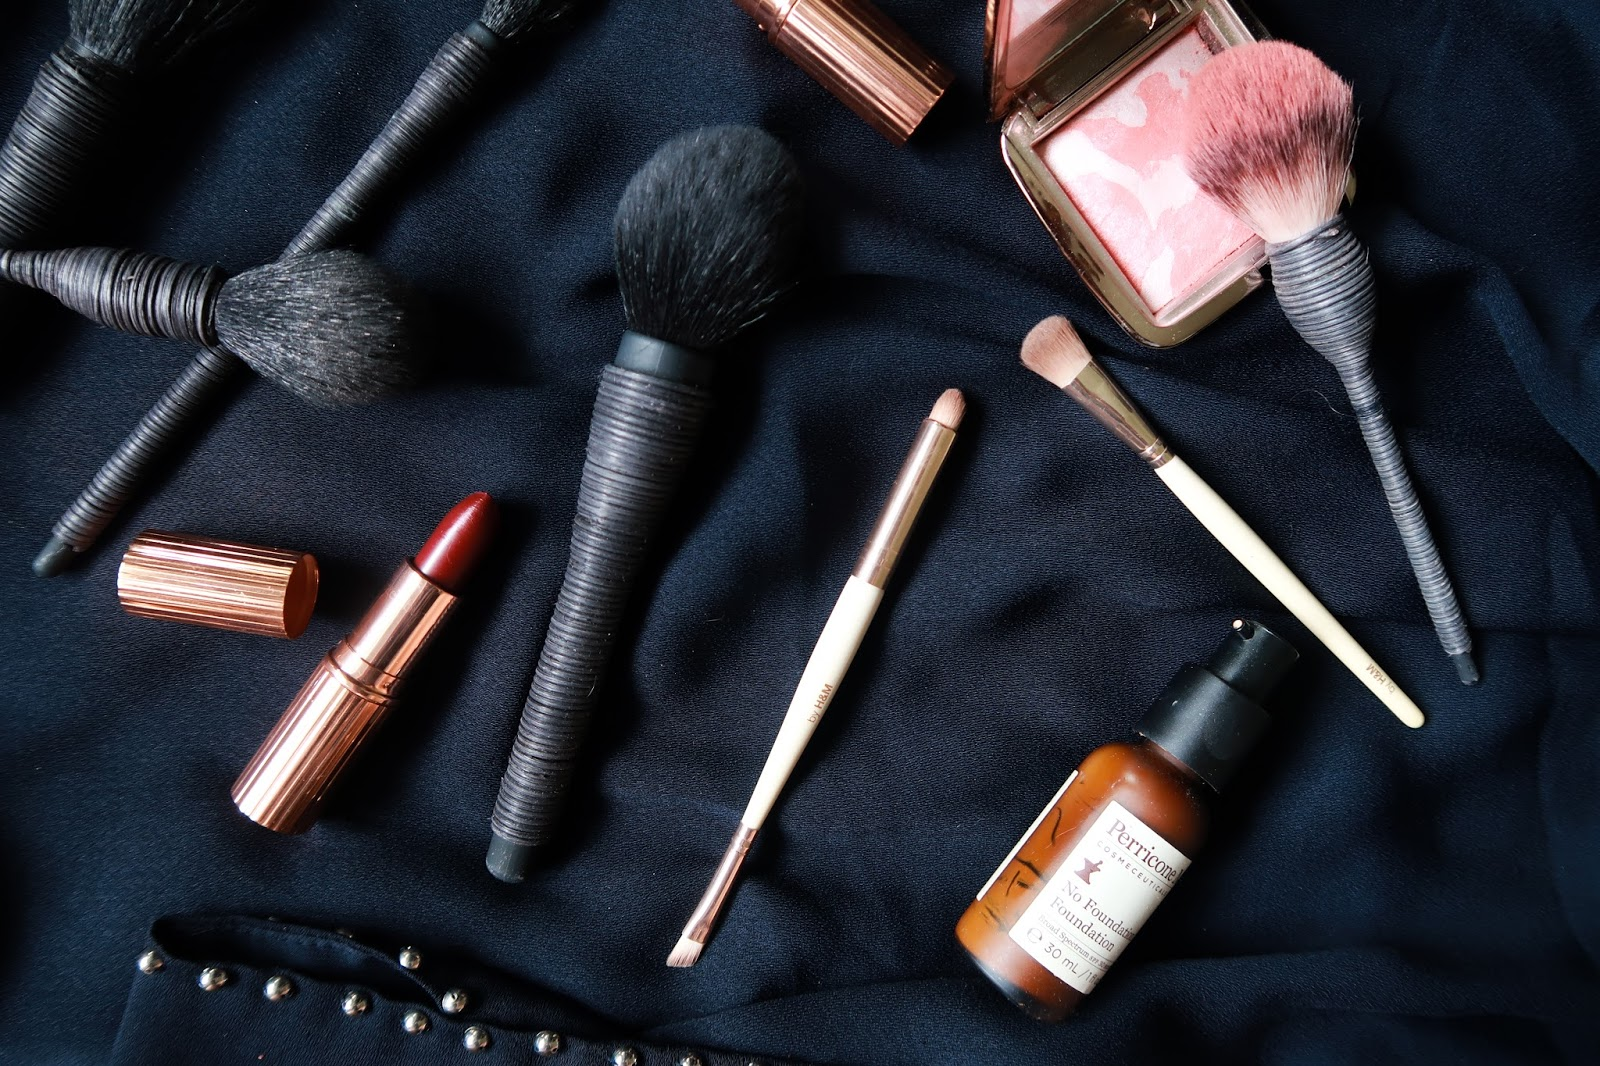 Make-up brushes - tips & tricks